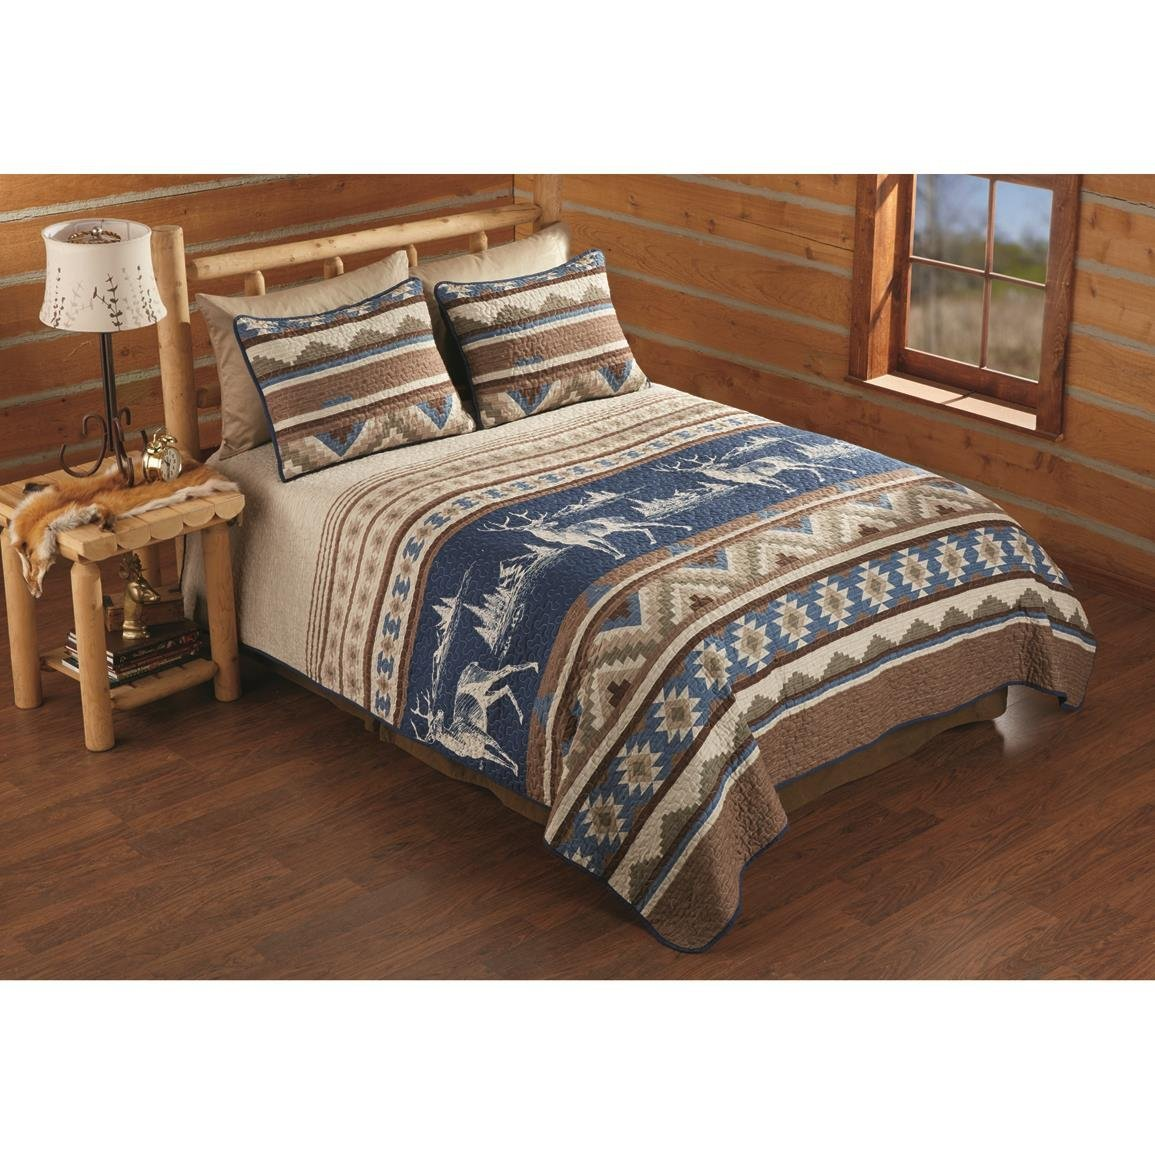 3 Piece Tan Brown Blue Deer Southwest Quilt King Set, Hunting Themed Bedding Southwestern Native American Wildlife Tribal Cabin Pattern Lodge Stripes Forest Nature Wilderness Taupe, Cotton Polyester